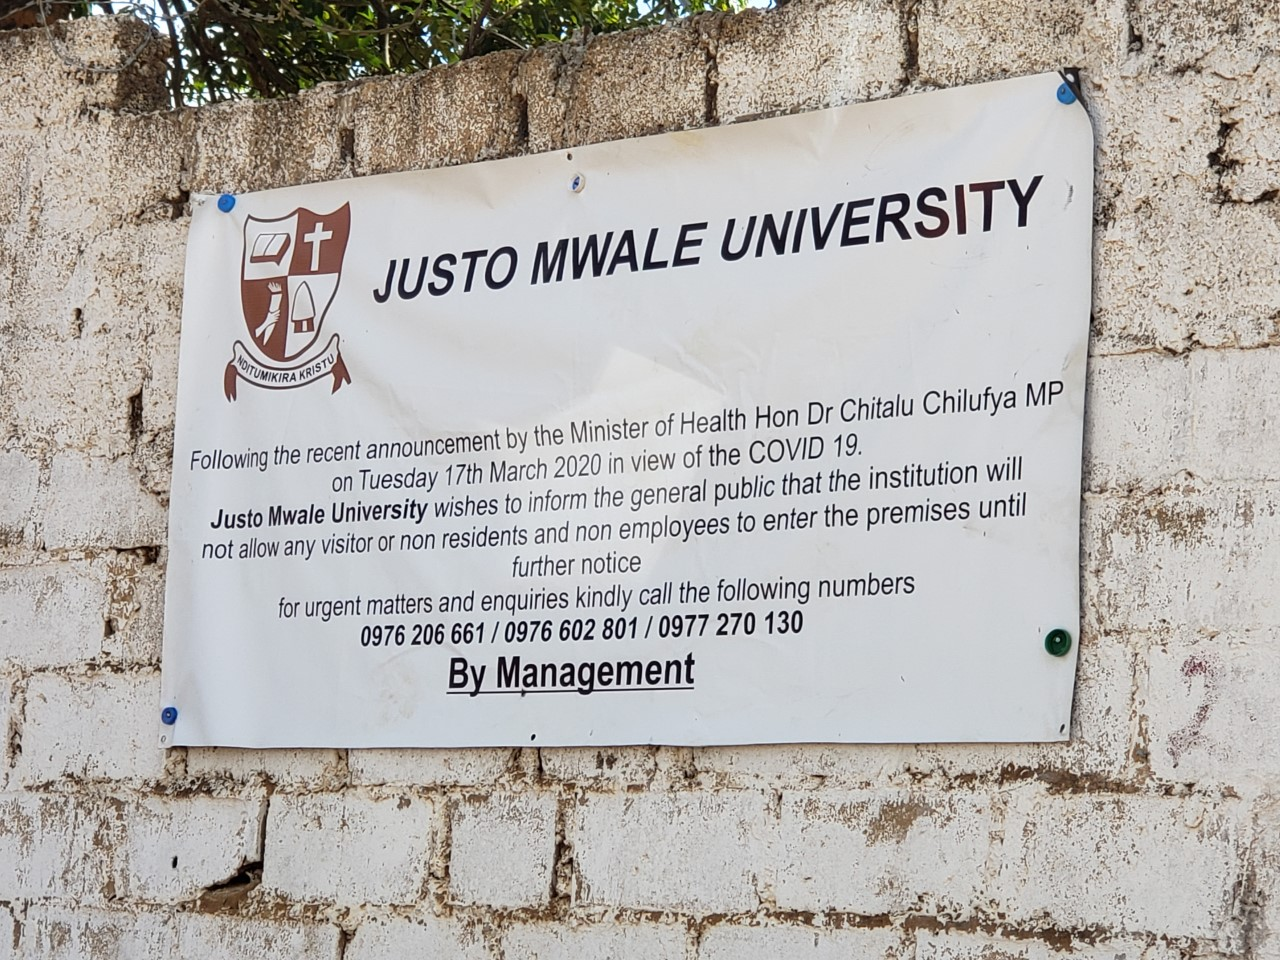 Banner hanging on the wall at the entrance to Justo Mwale University. (Photo by Rev. Paula Cooper)